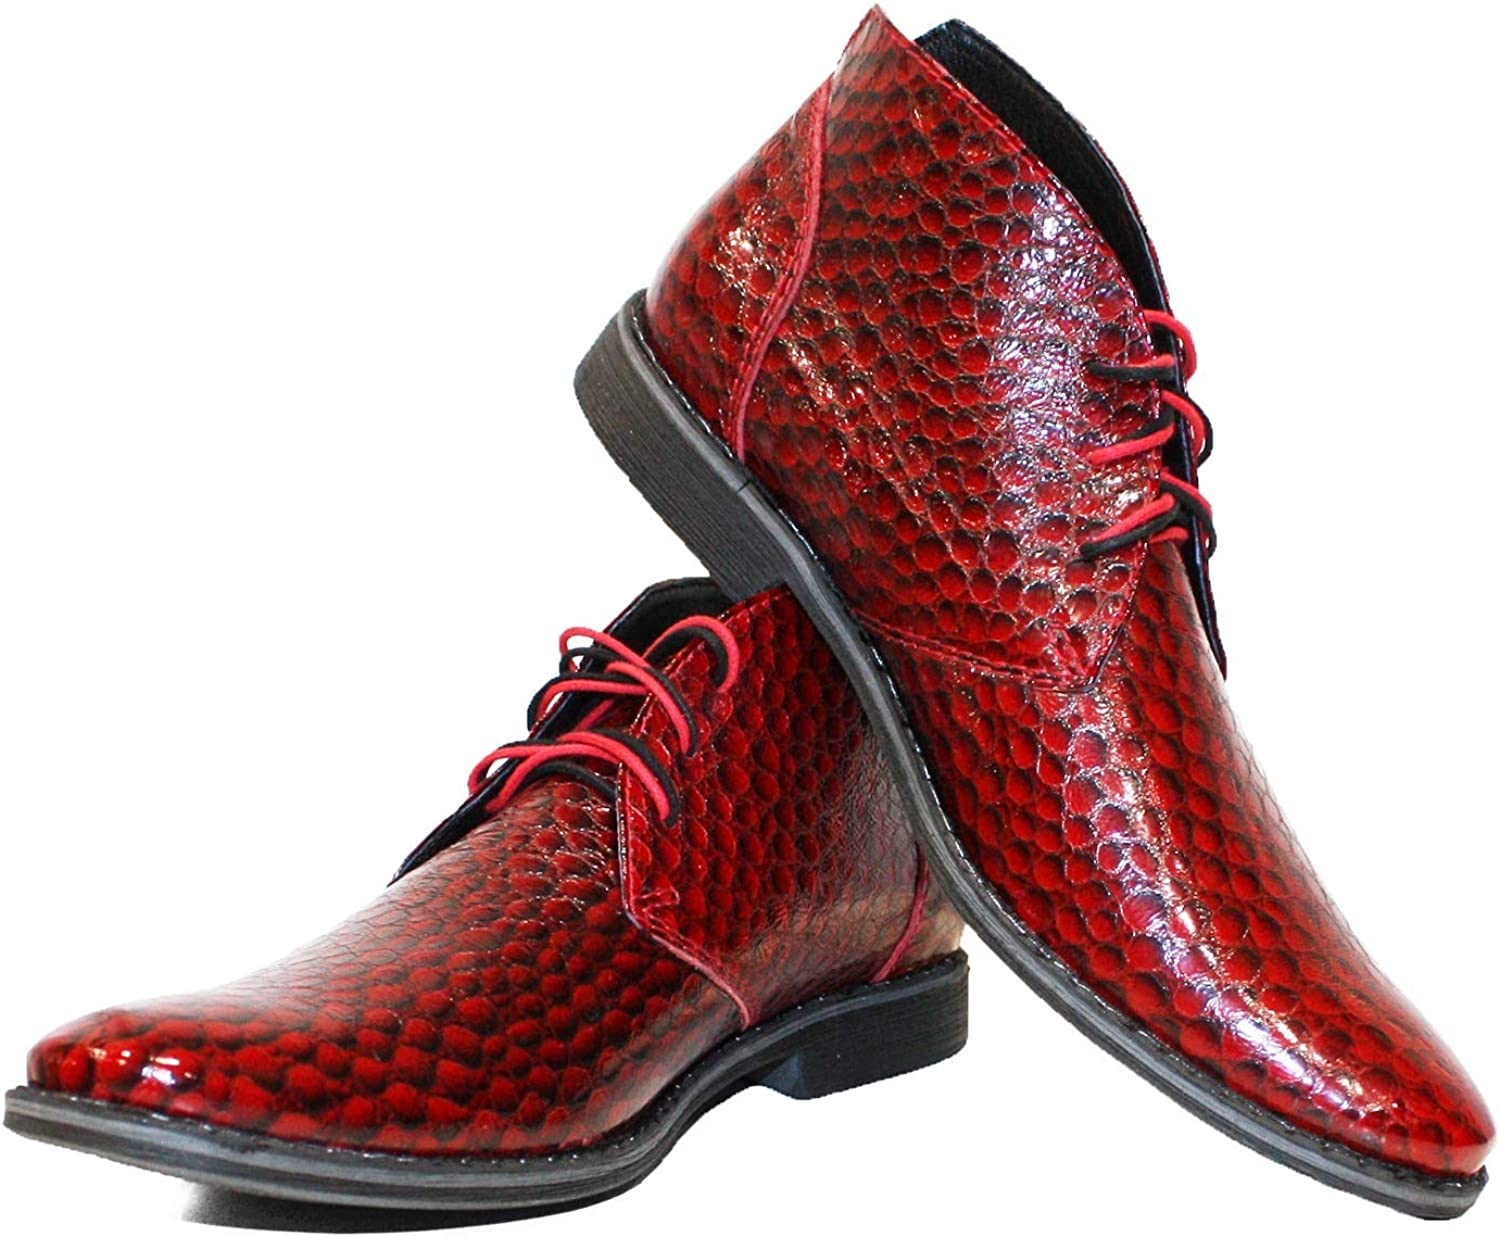 Peppeshoes Modello Robeth - Handmade Italian Leather Mens color Red Ankle Chukka Boots - Cowhide Patent Leather - Lace-Up